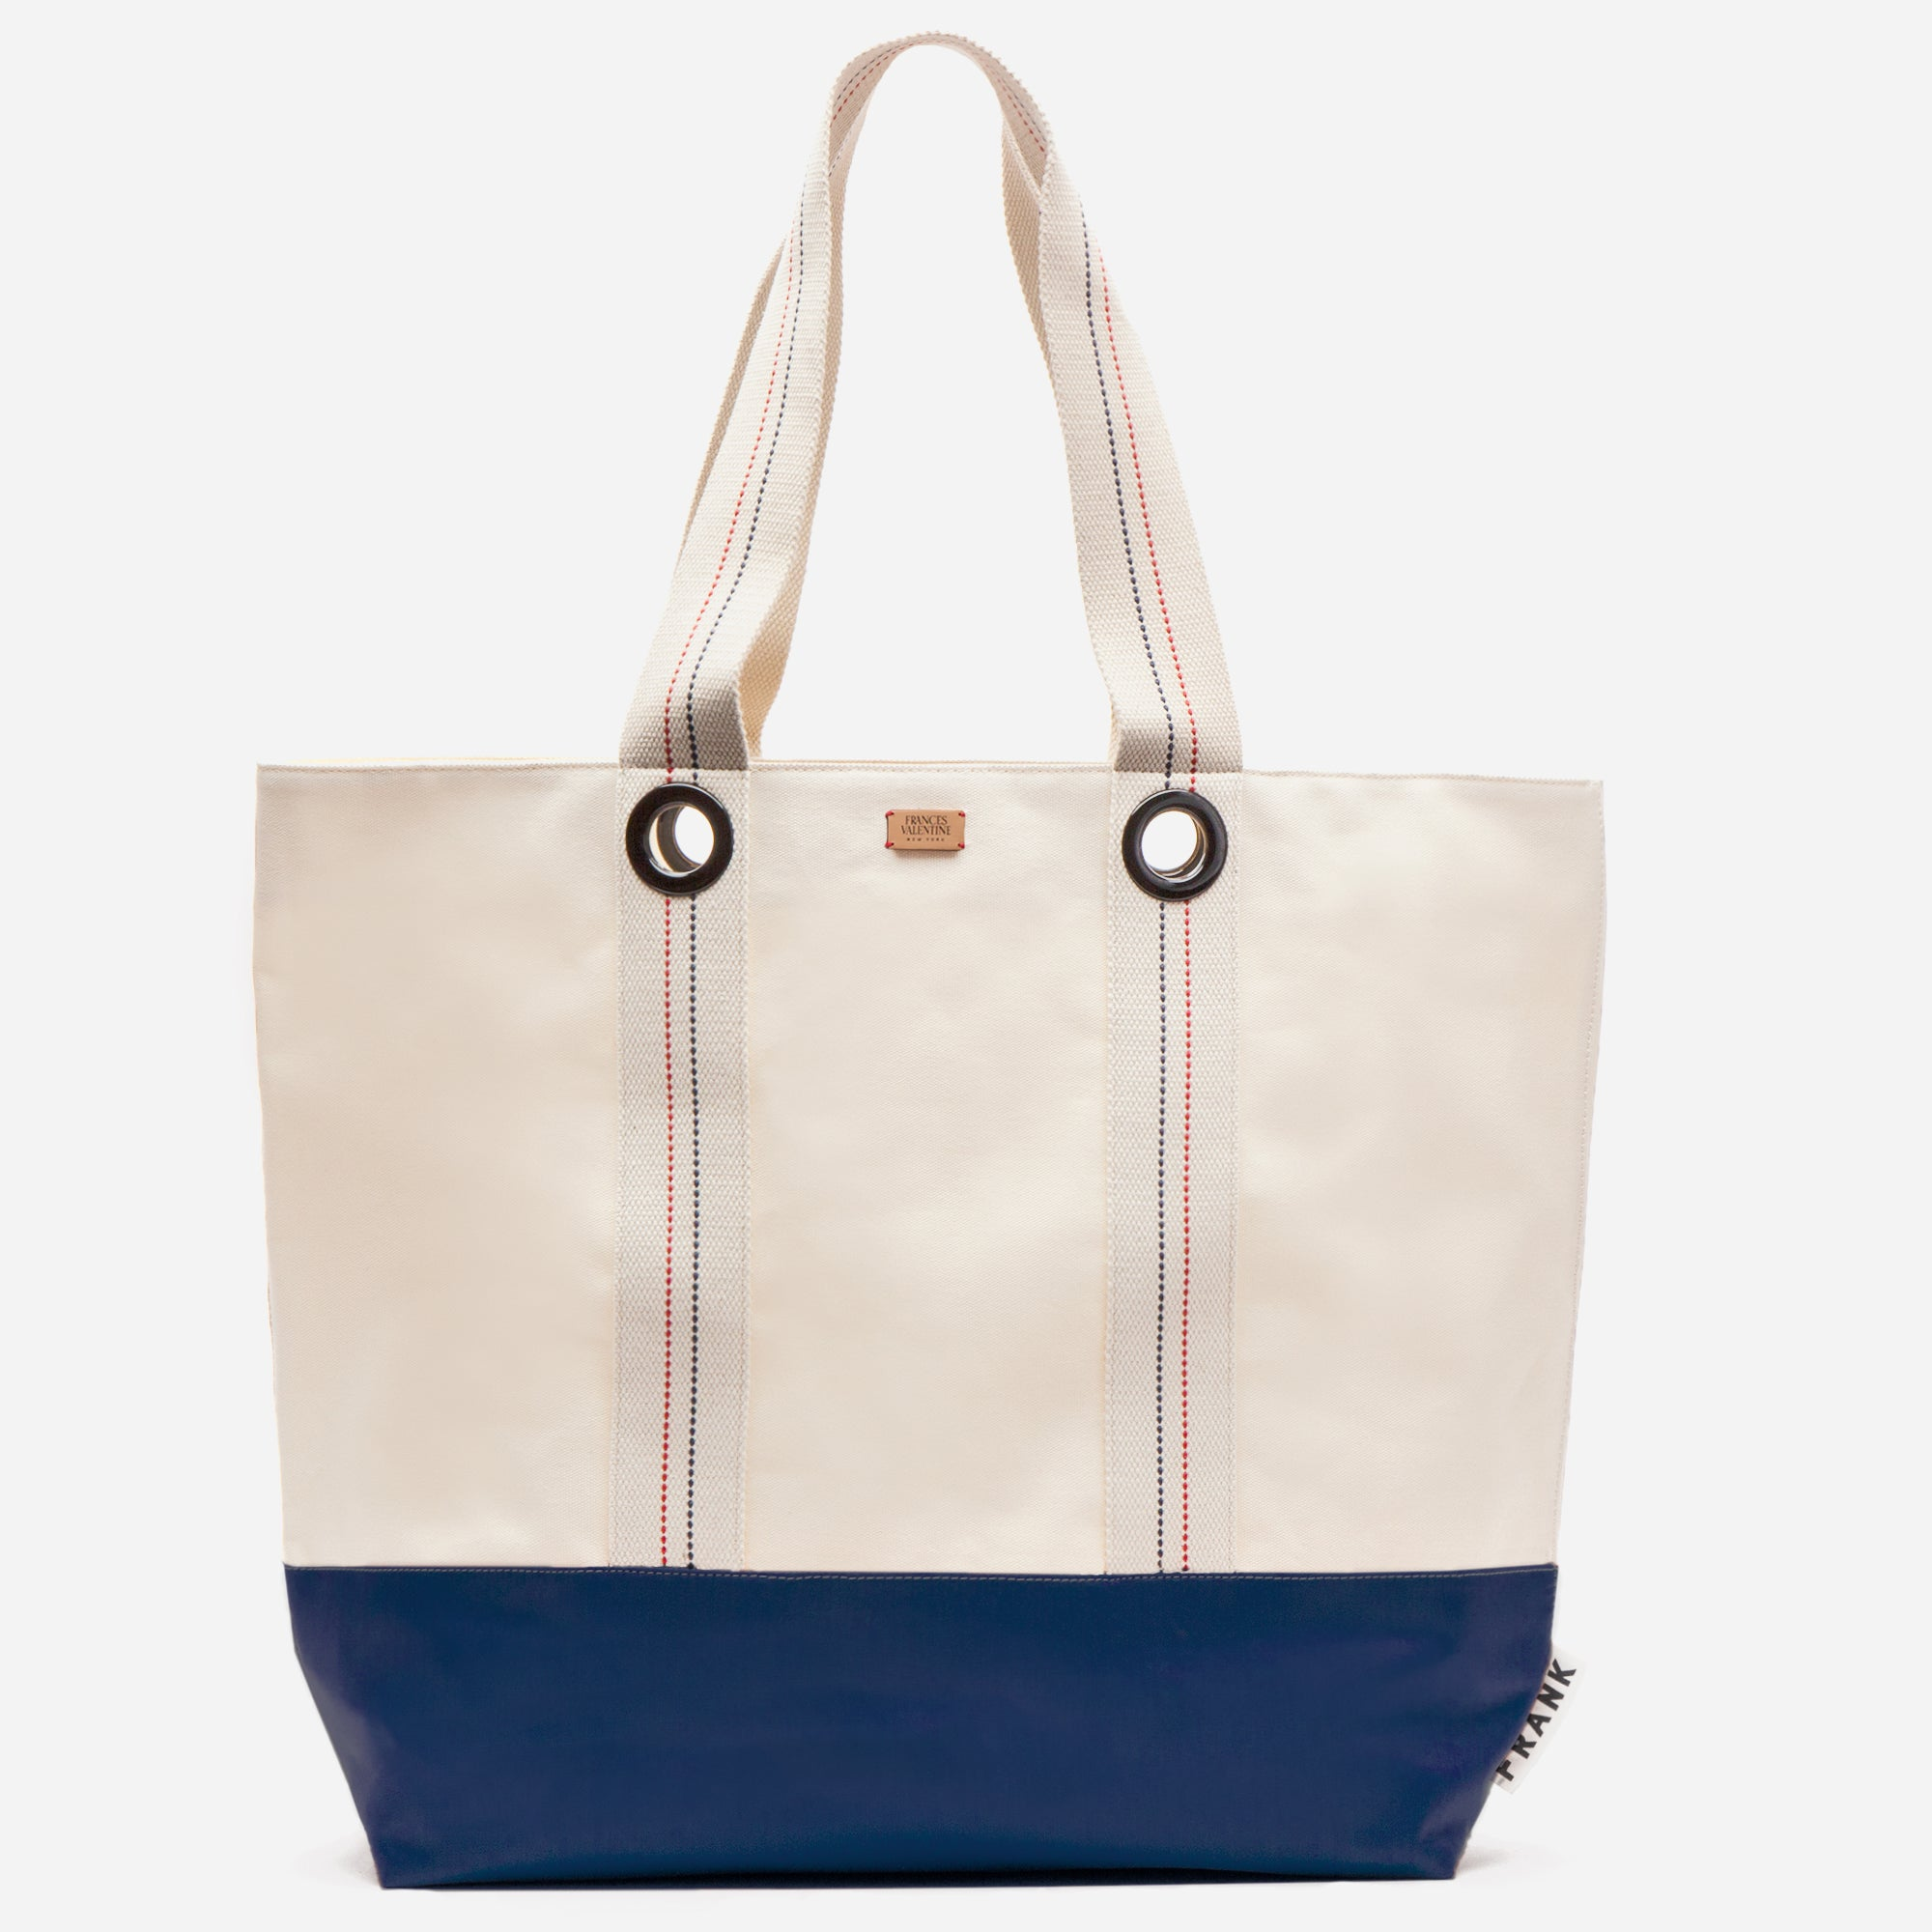 Frank Men's XL Canvas Tote Natural Navy - Frances Valentine